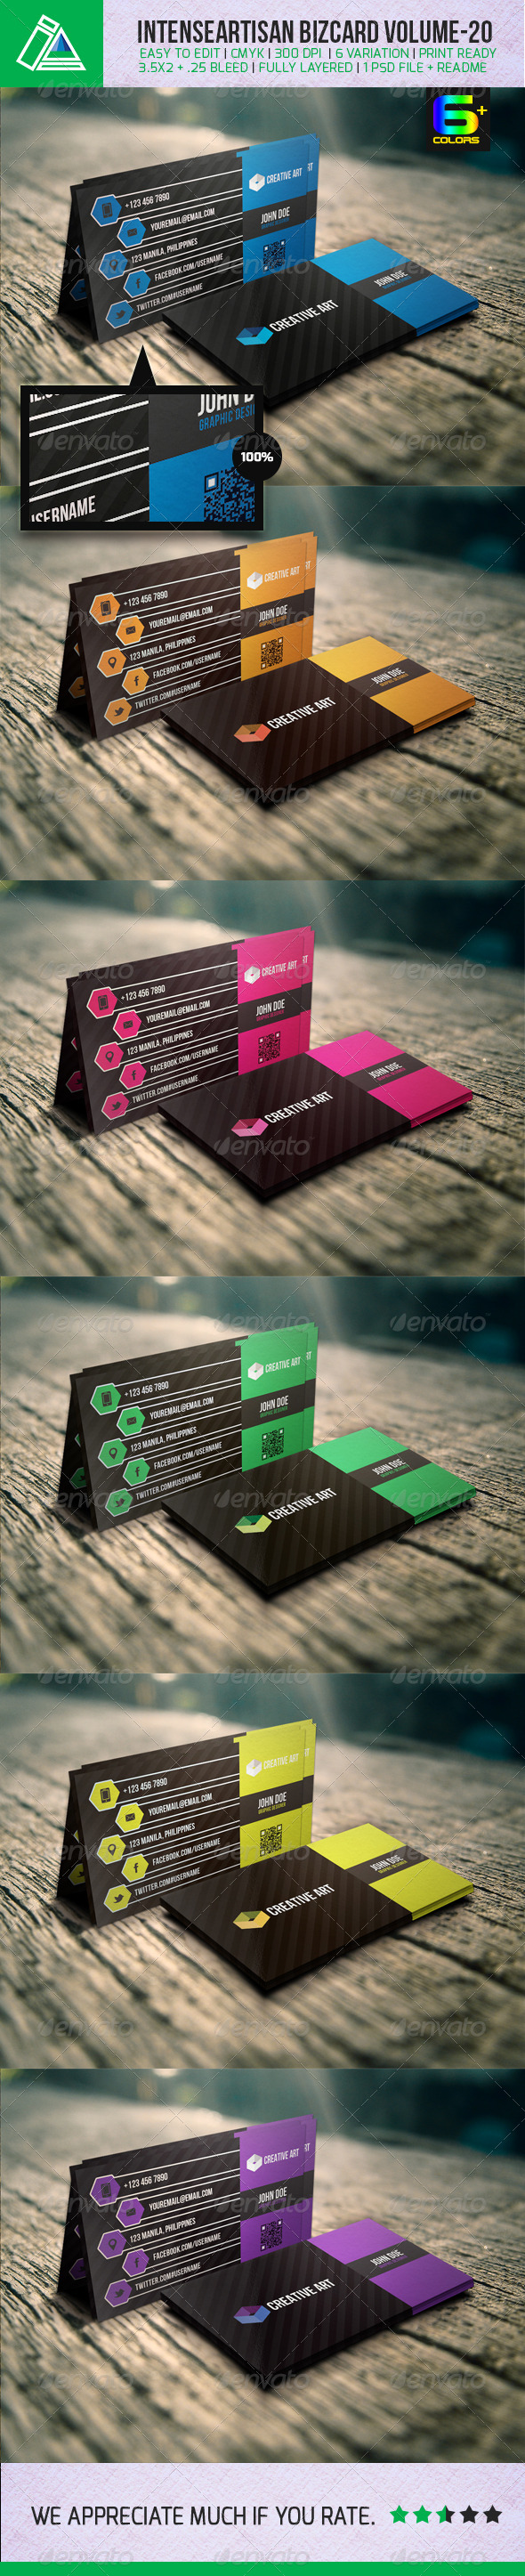 GraphicRiver IntenseArtisan Creative Business Card Vol-20 5159748